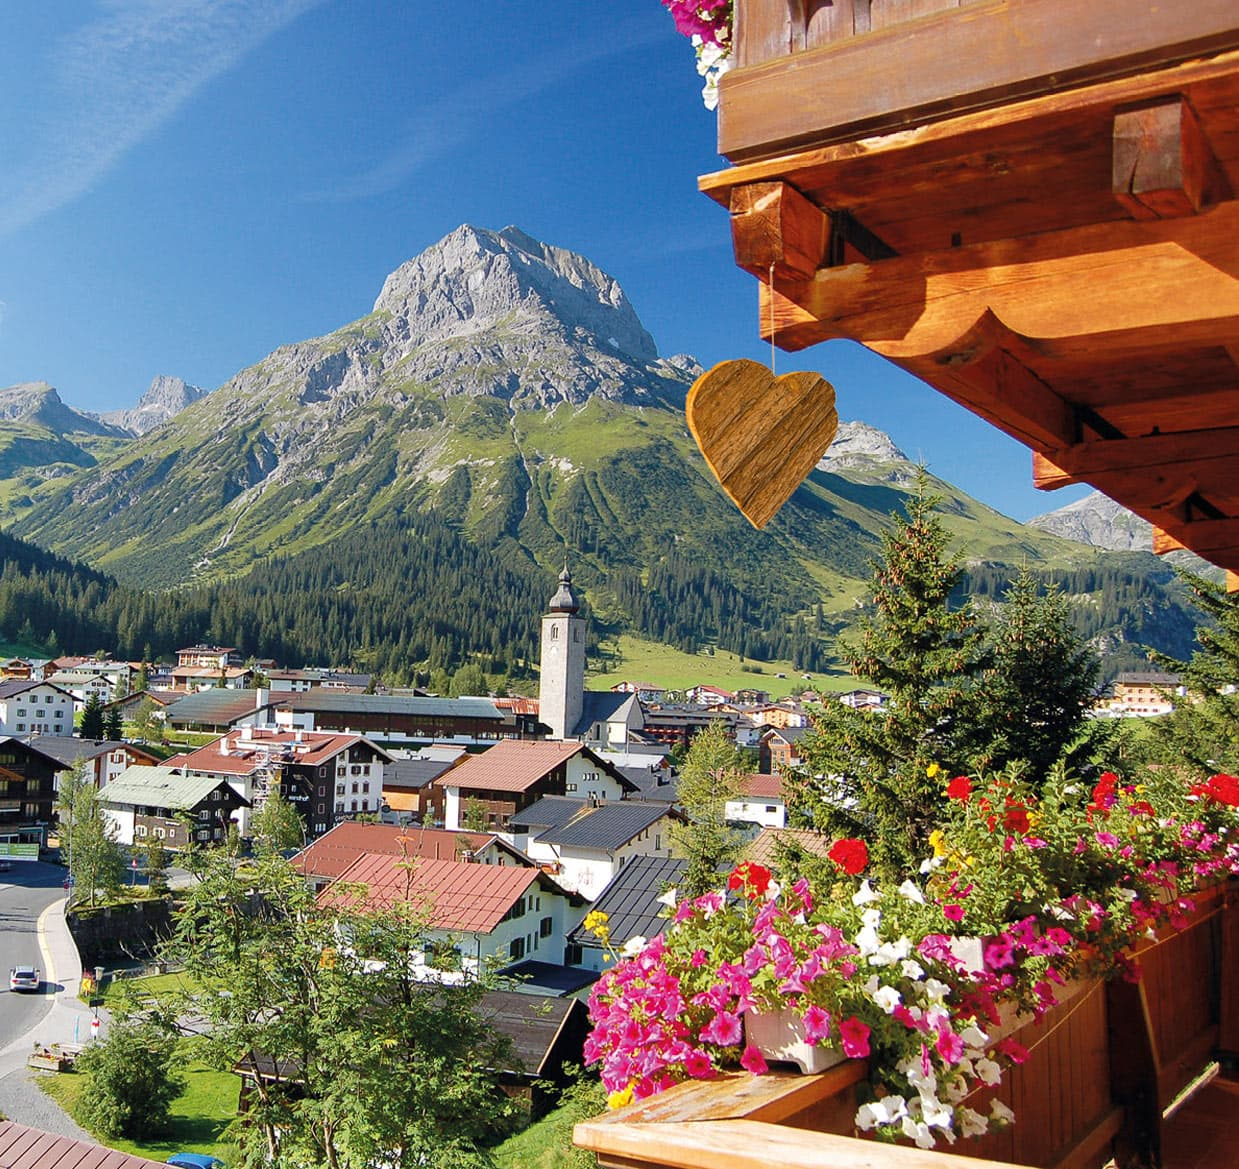 Appart Andrea - Summer Views in Lech am Arlberg